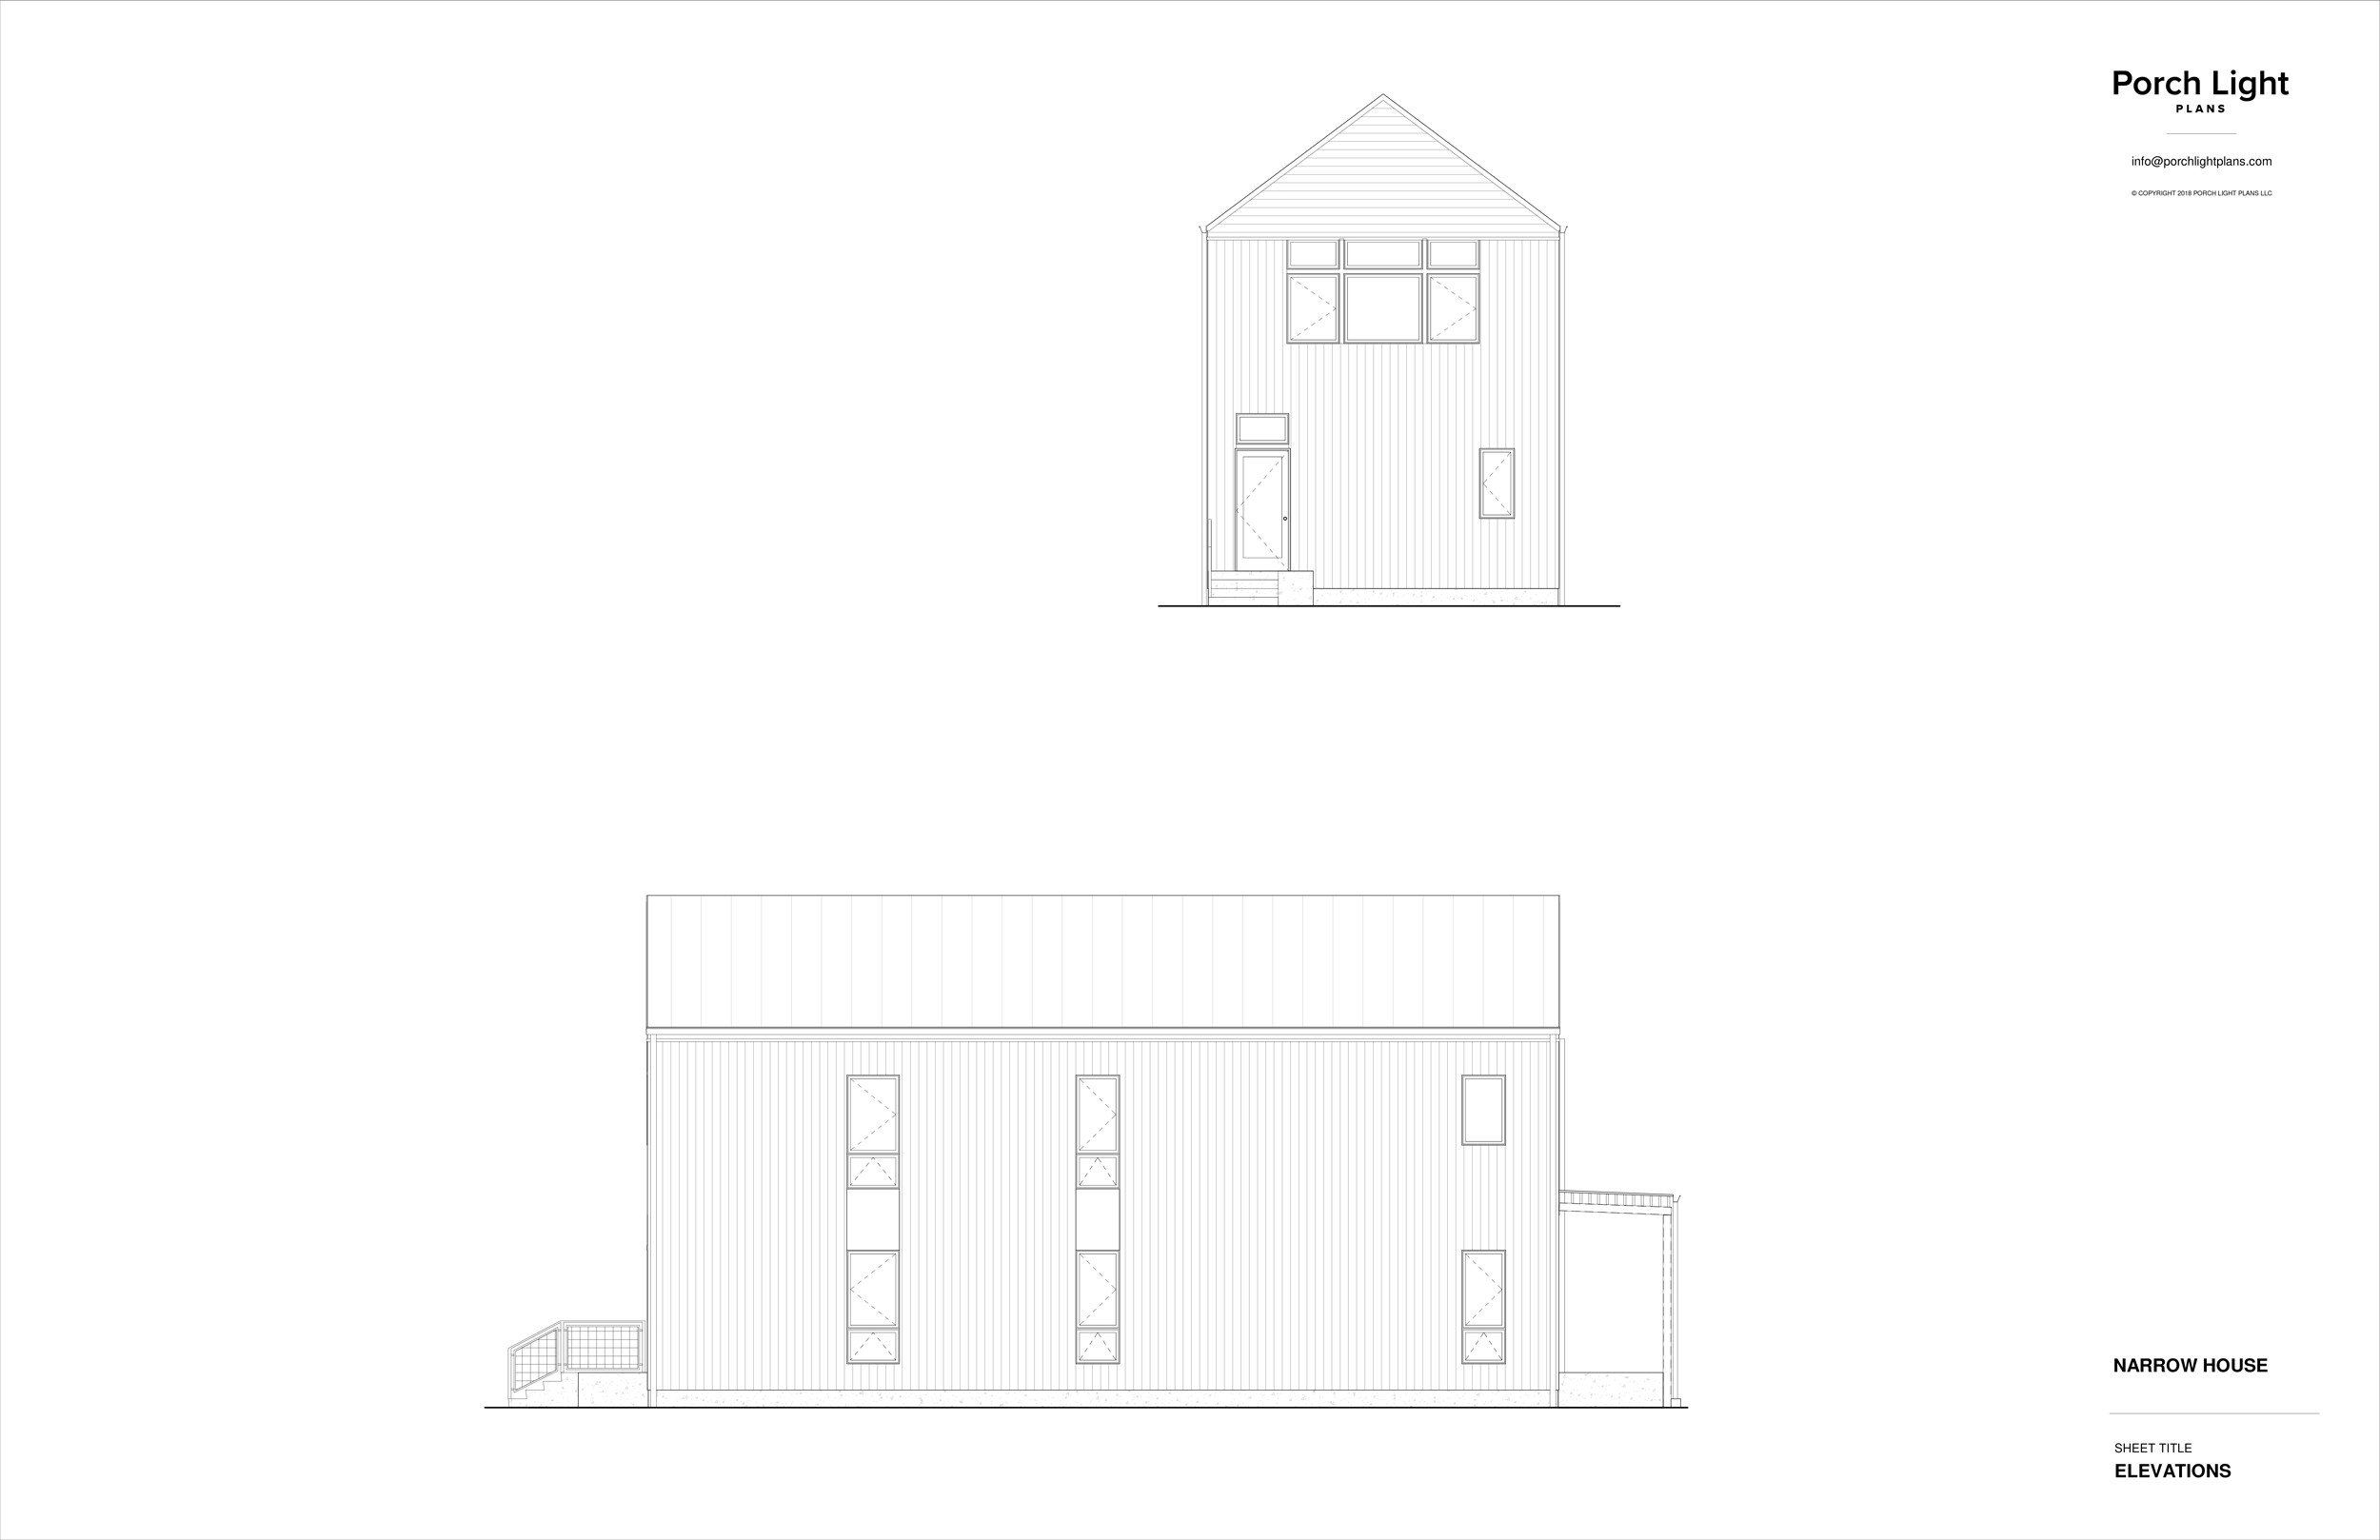 narrow-house-elevations-2.png